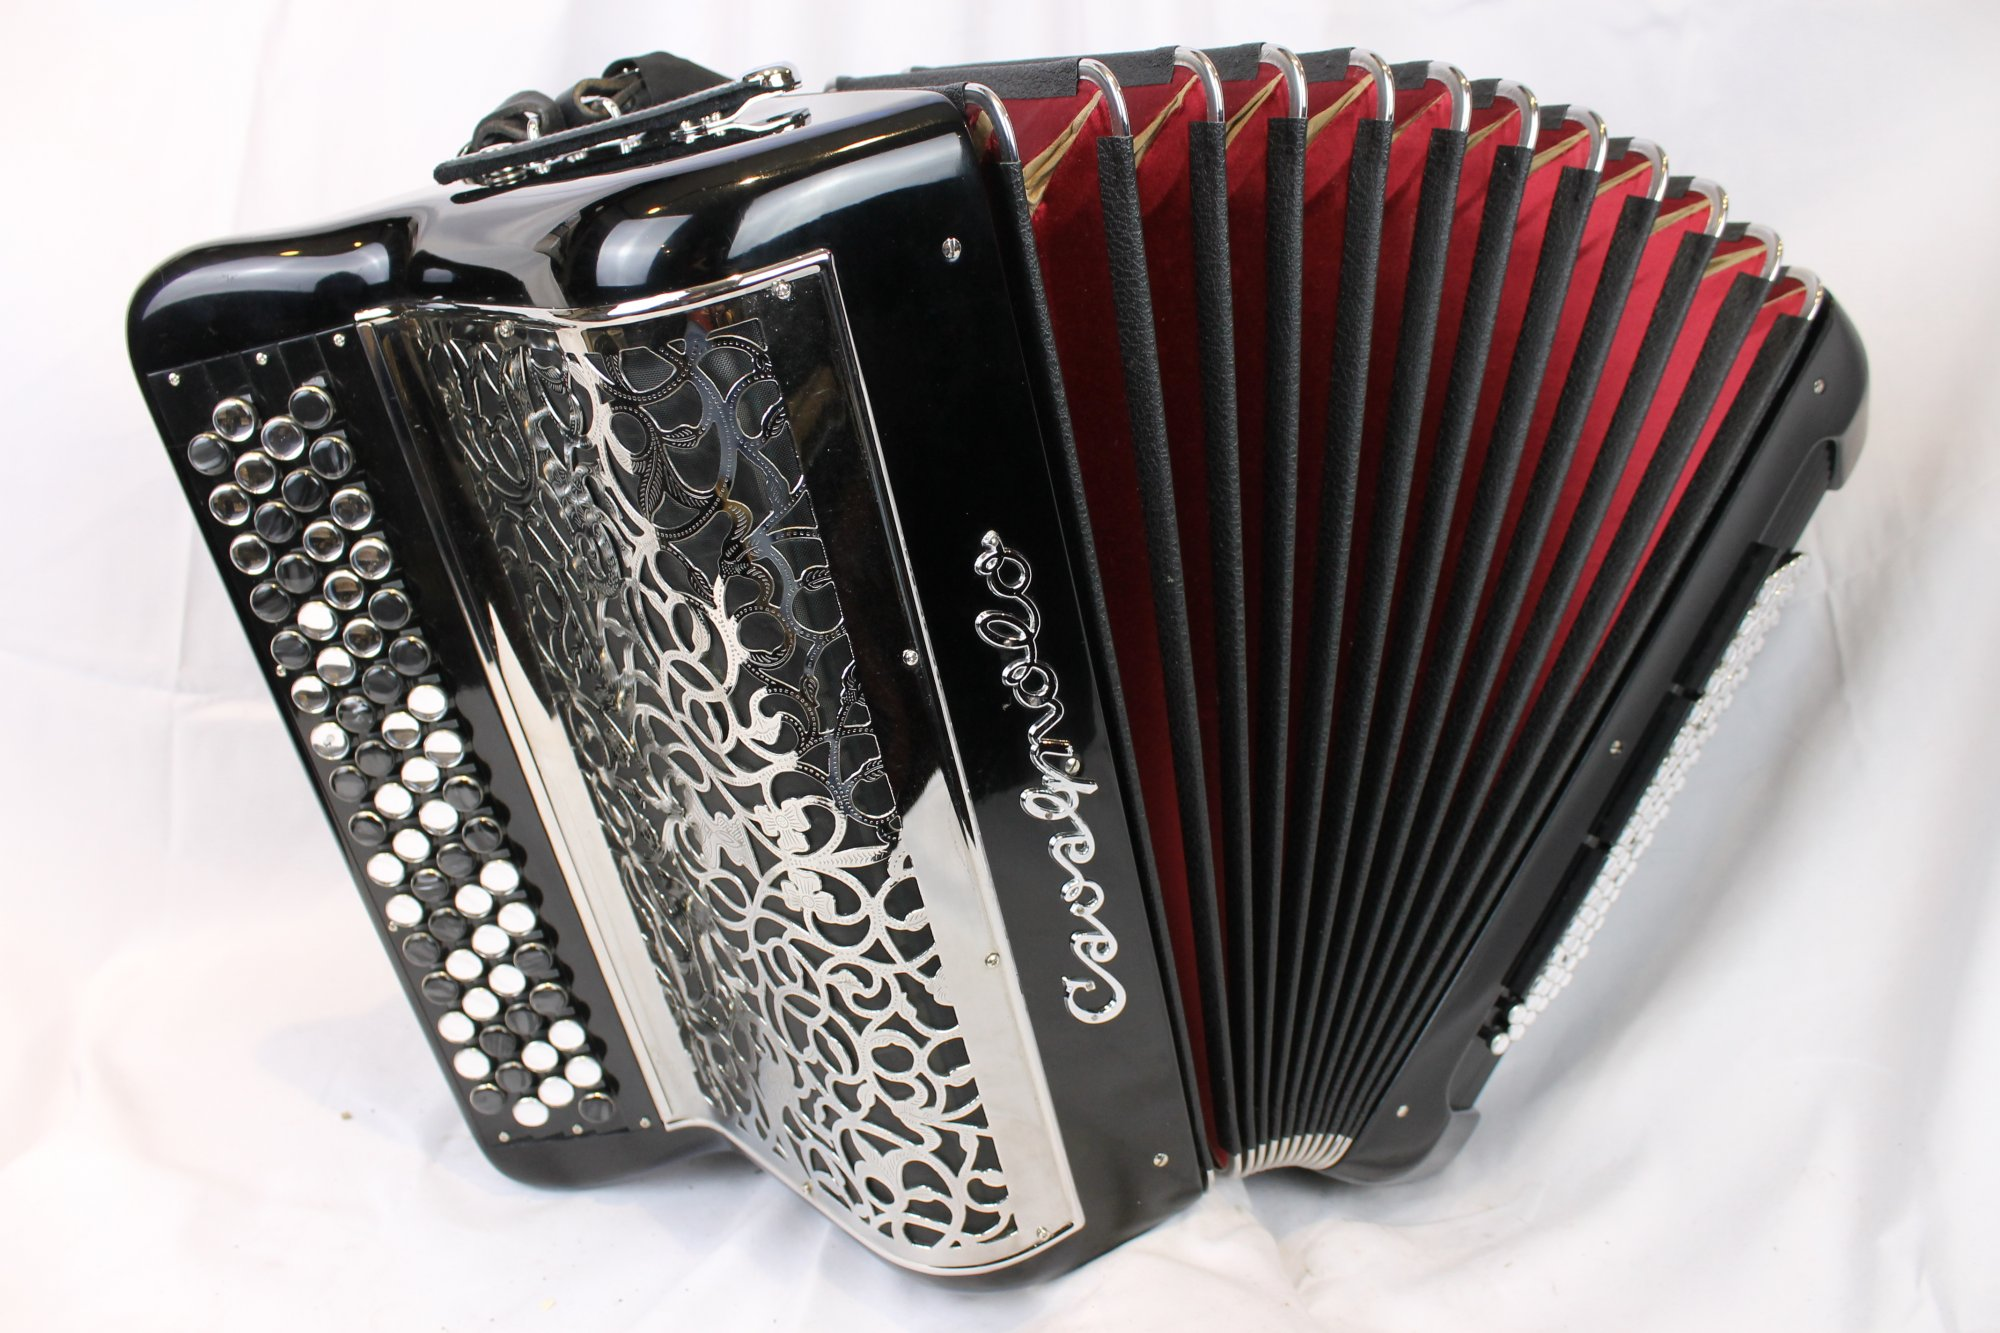 3659 - Like New Black Cavagnolo Chromatic Button Accordion C System LMM 66 96